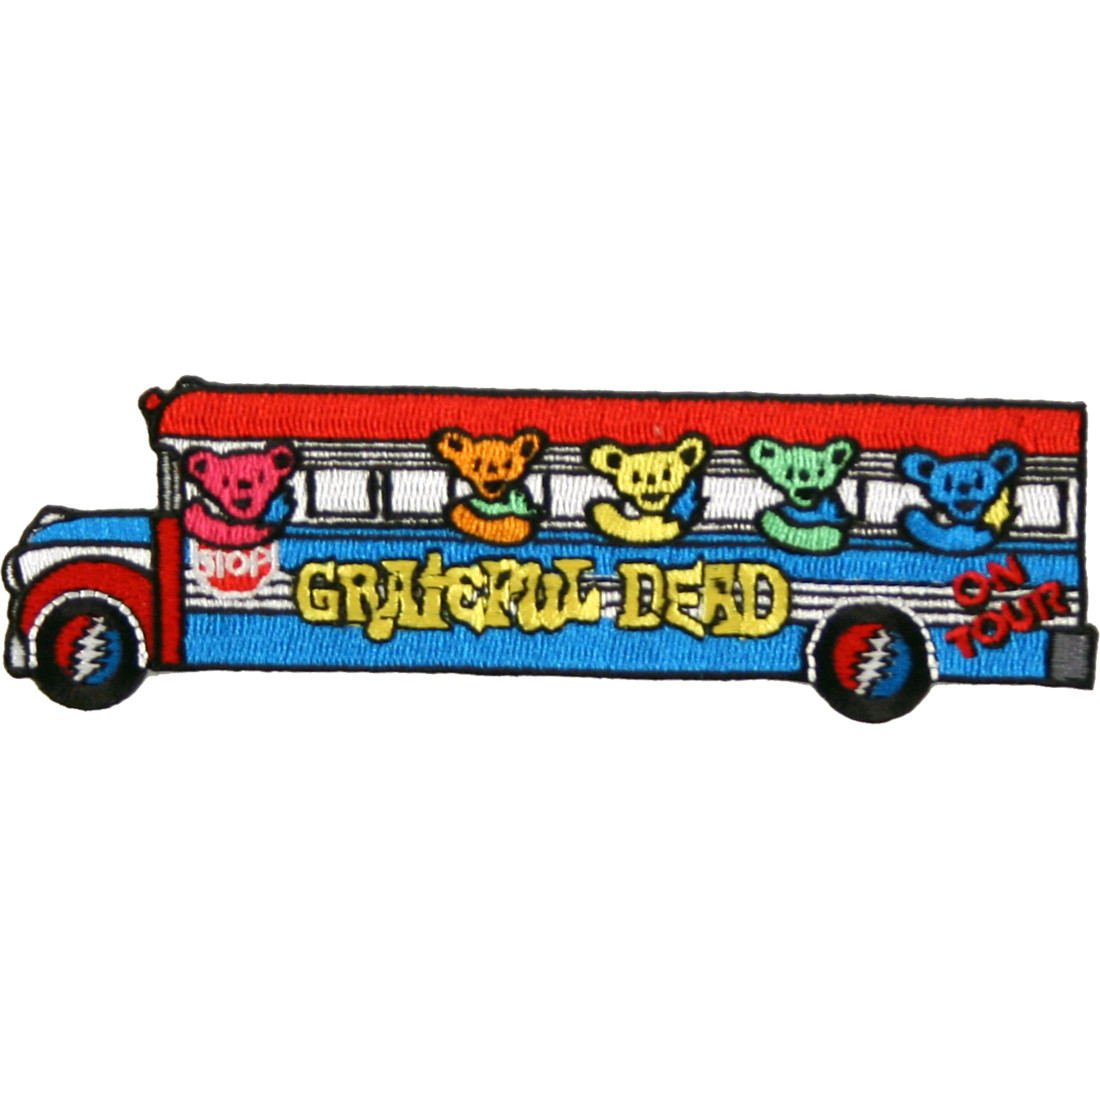 Bears On The Bus Patch